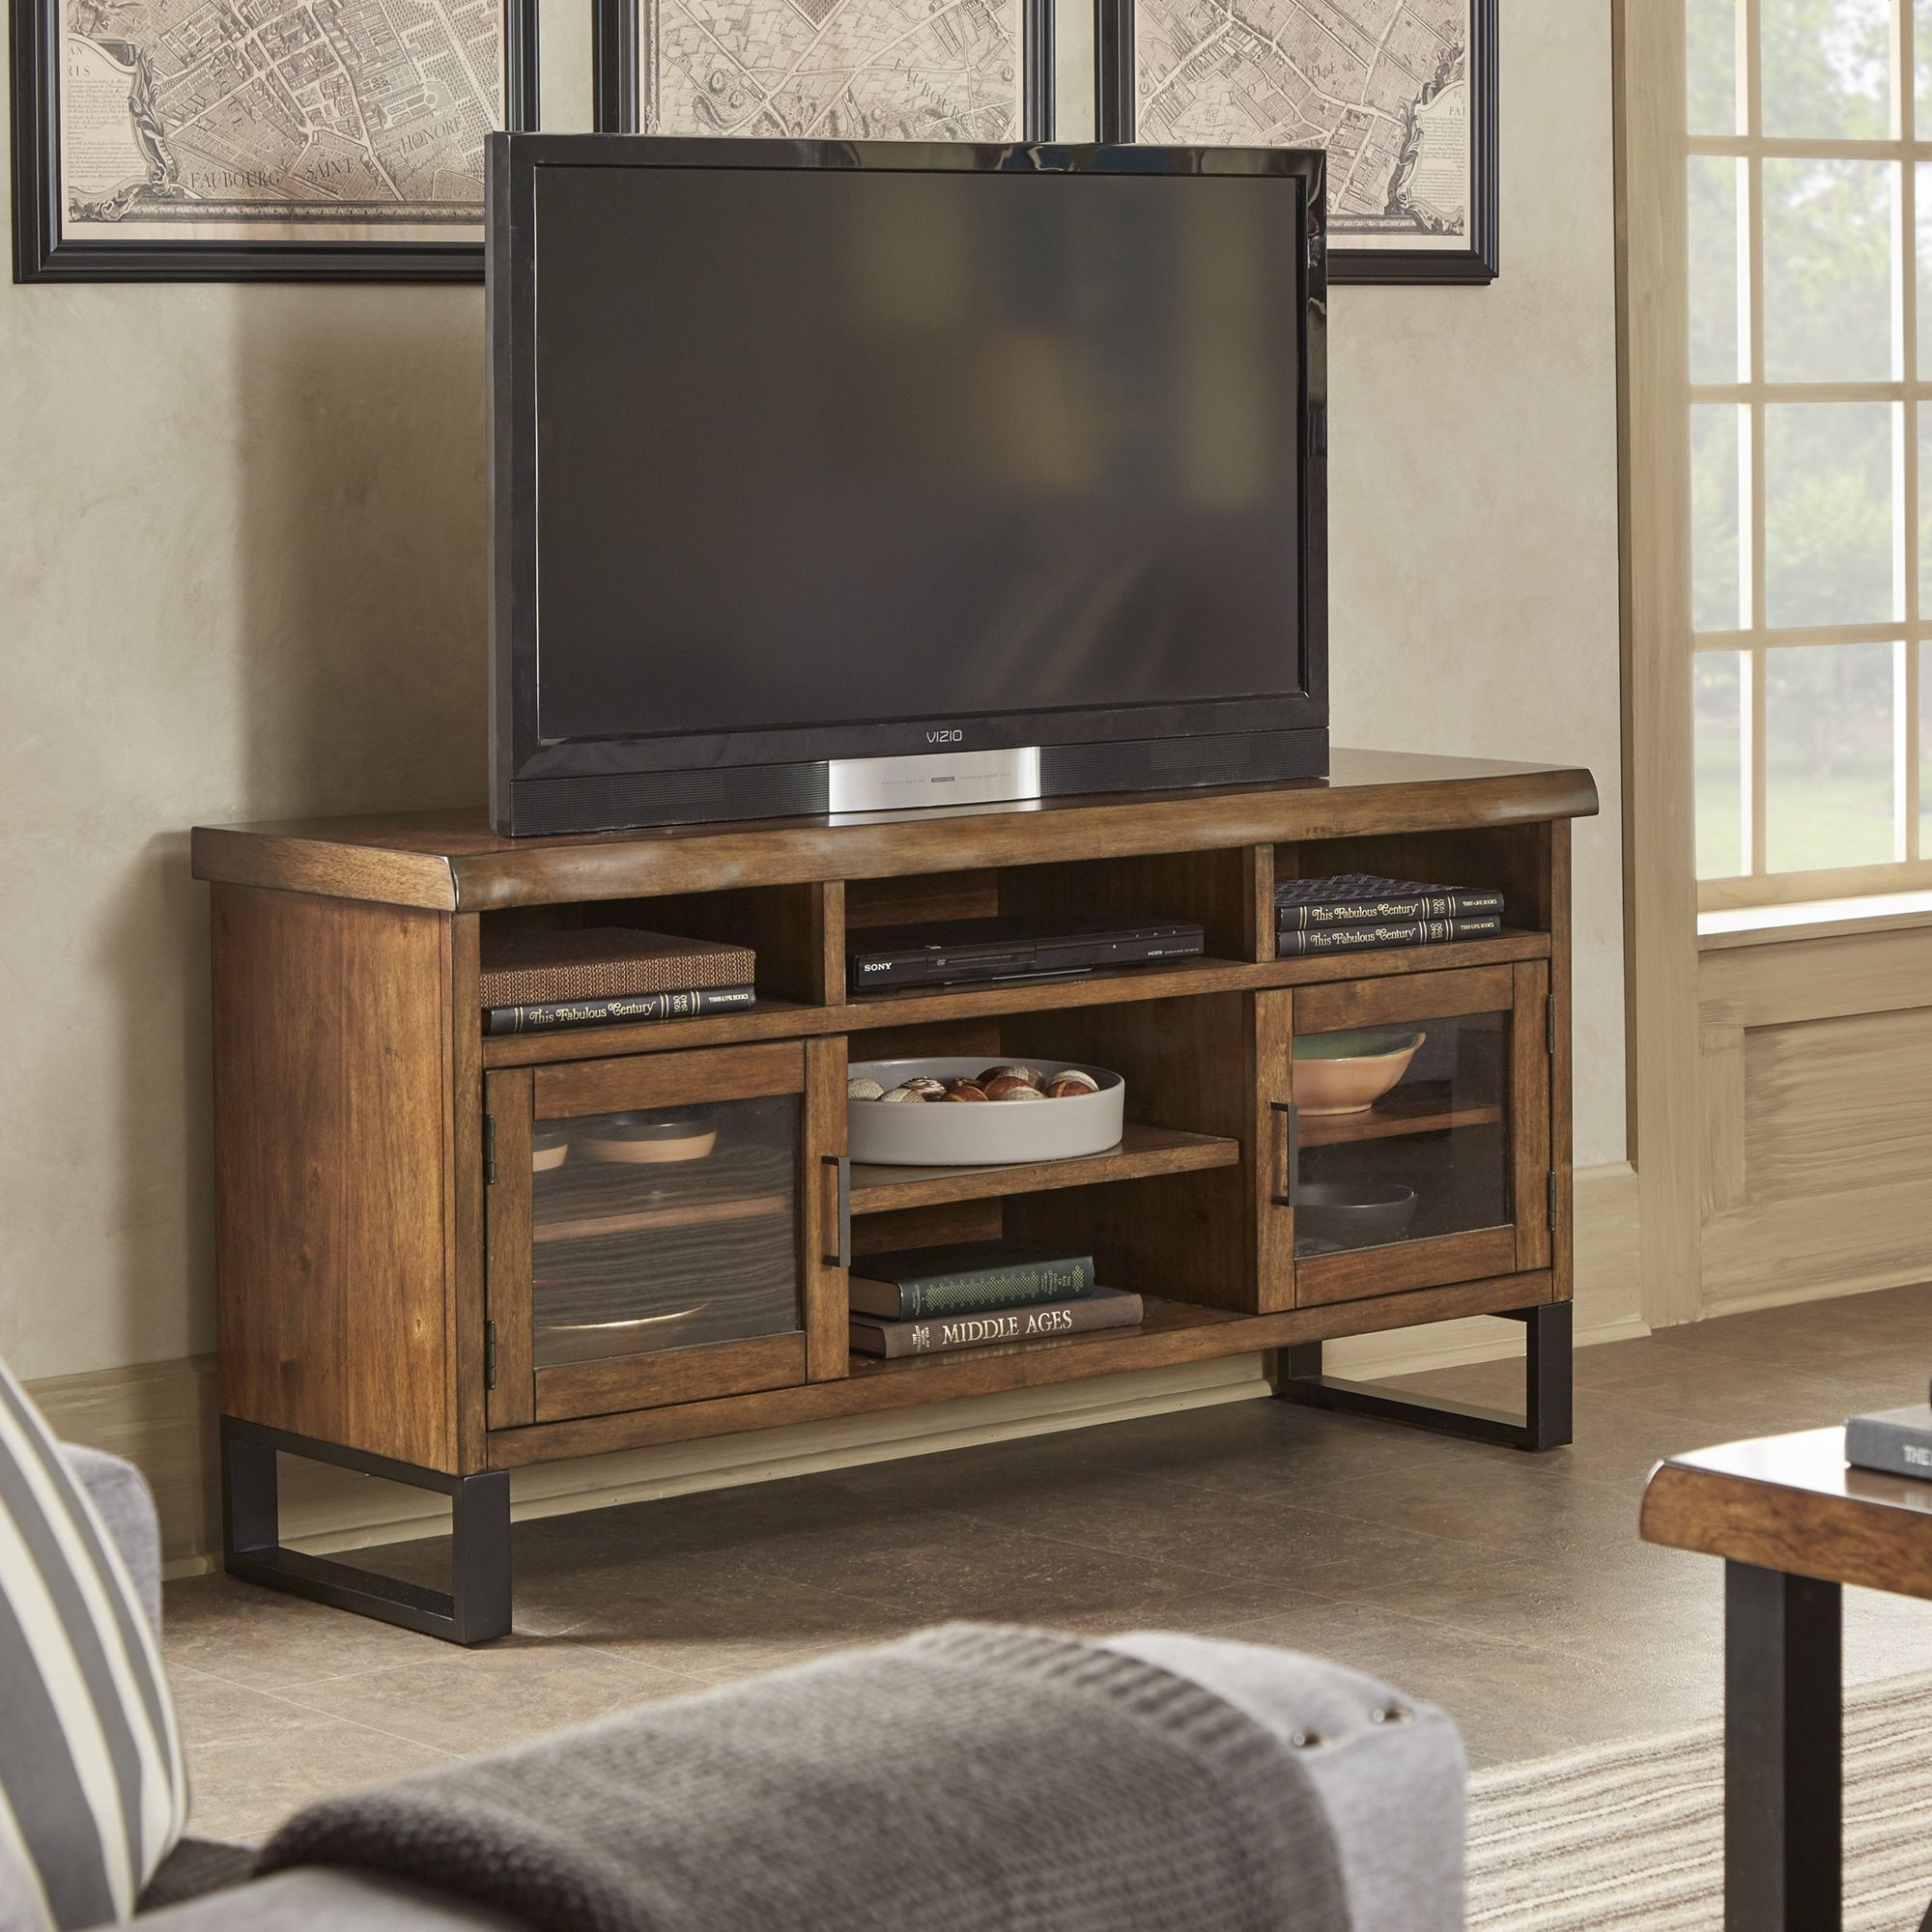 Victorian Tv Stand: Banyan Live Edge Wood And Metal TV Stand Media Console By